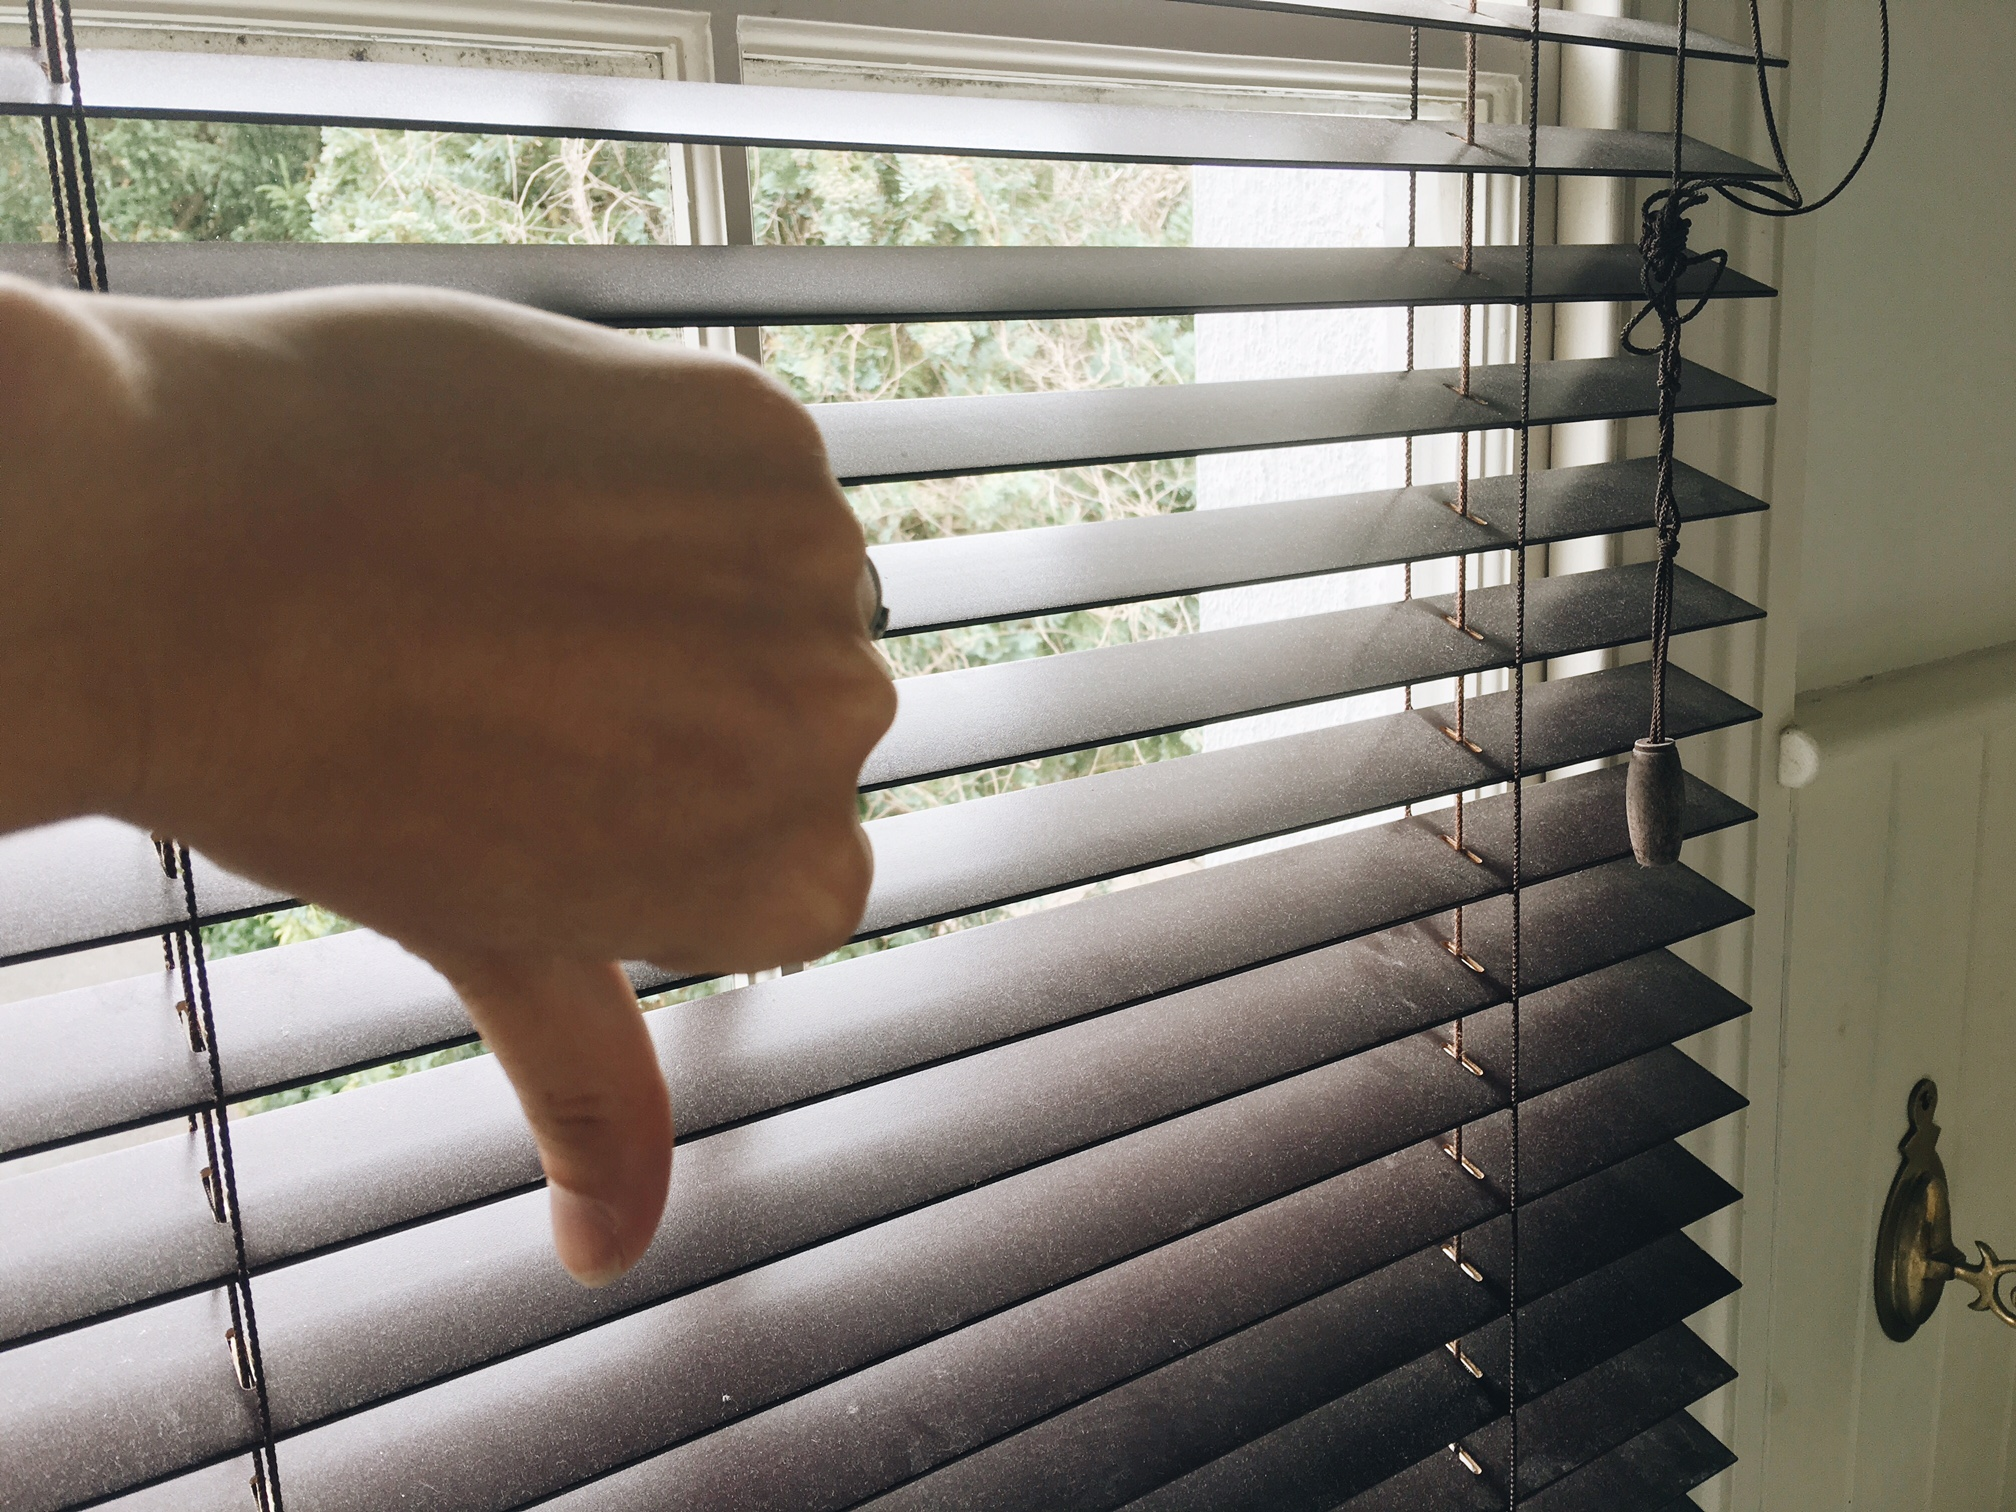 I hated these dirty, dangerous, tangled crummy brown blinds!